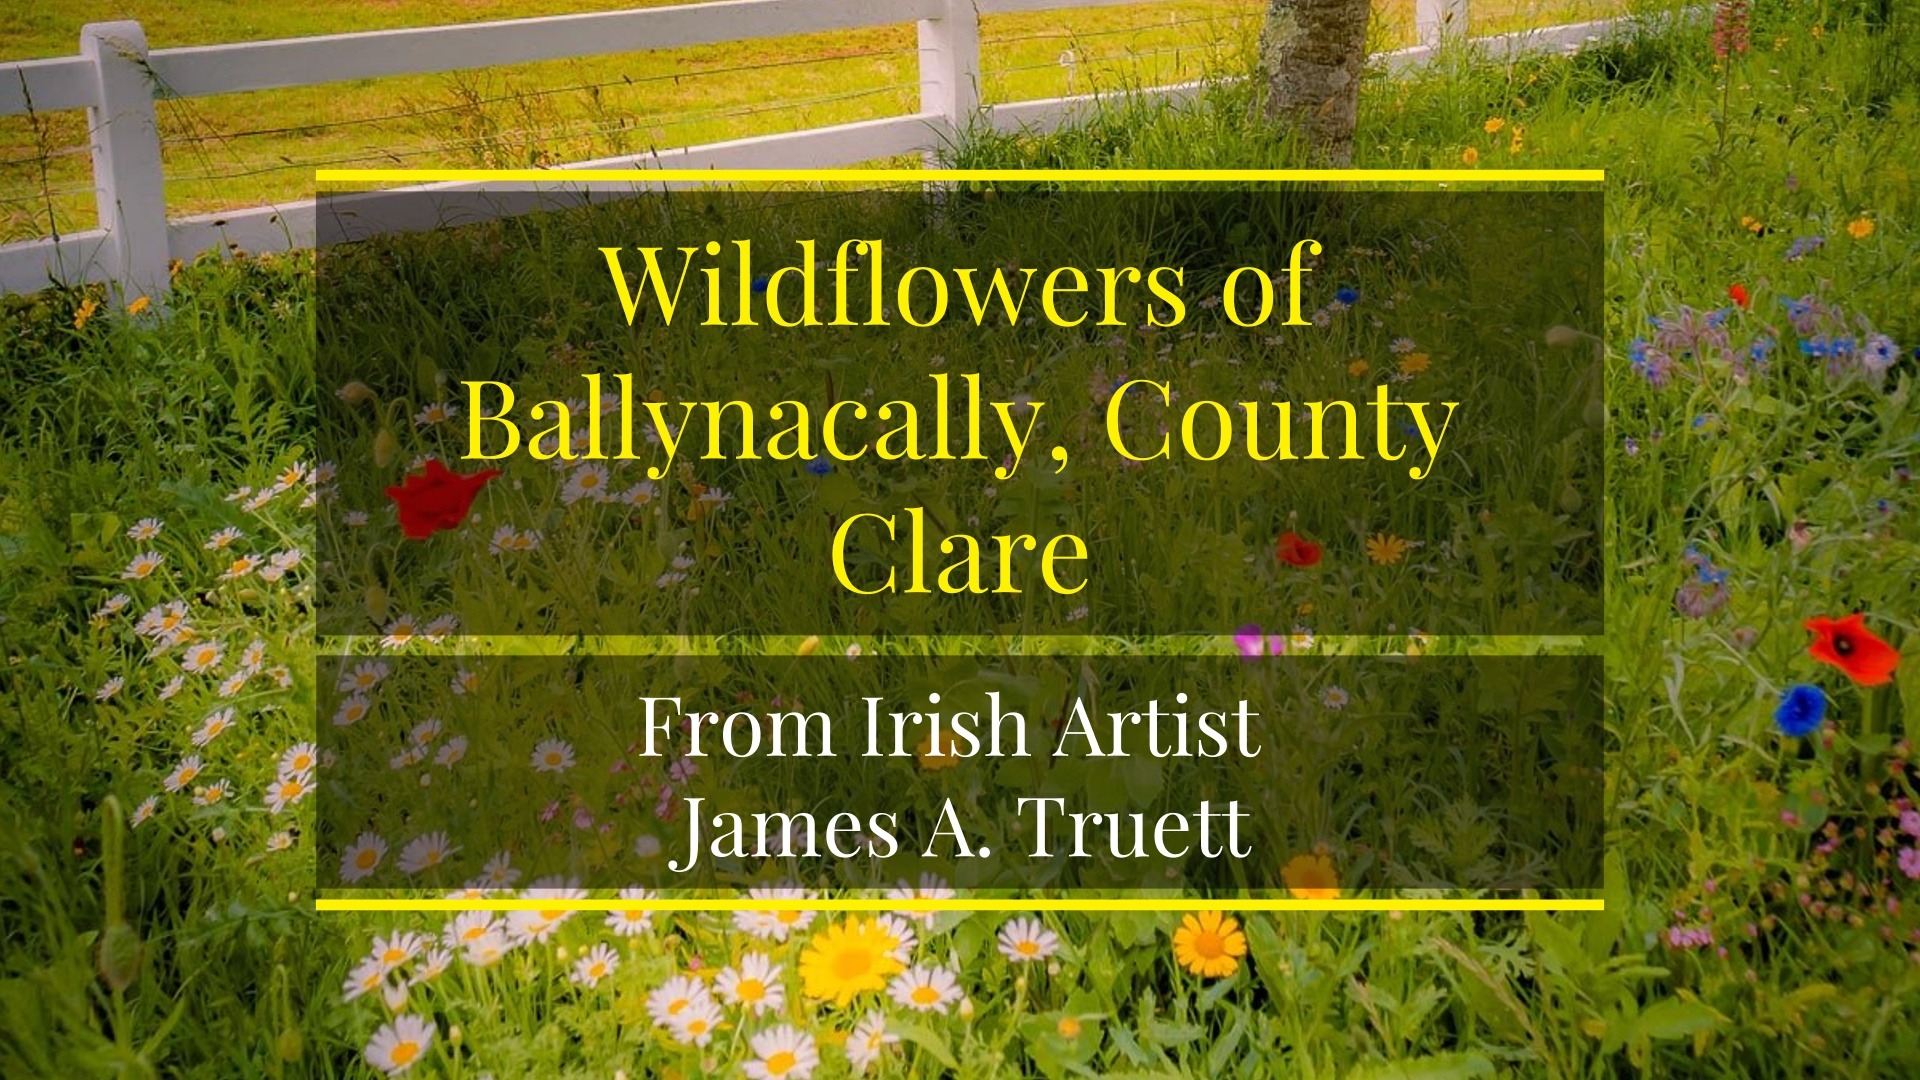 Wild Flowers of Ballynacally, County Clare